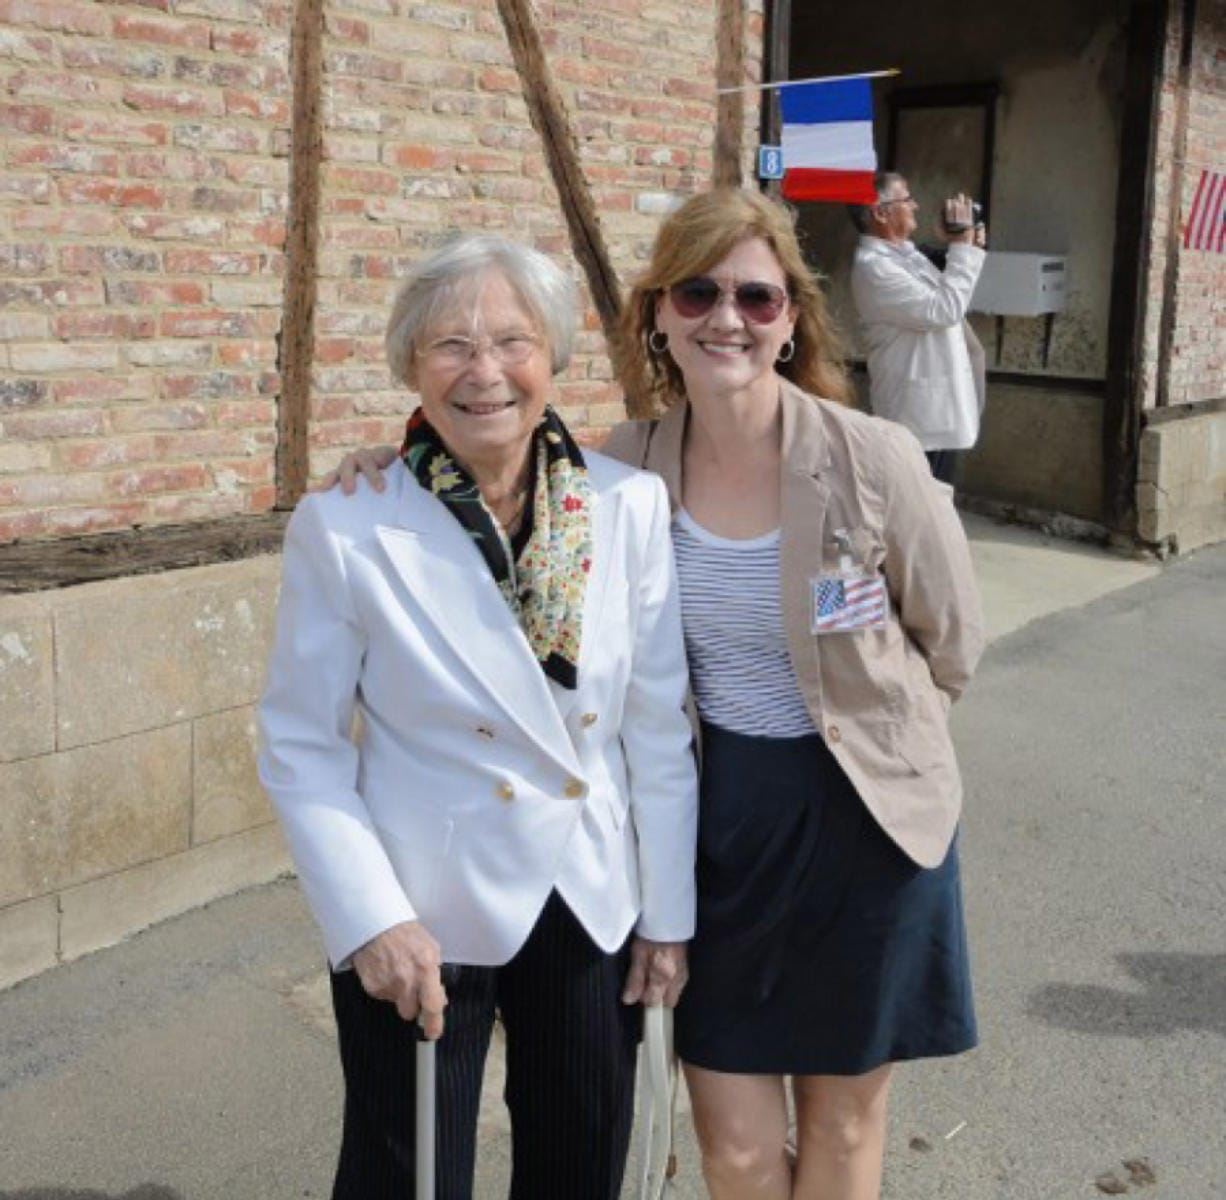 Godelieve Van Laere Pena and author Susan Tate Ankeny in Le Cardonnois, France, in 2011.